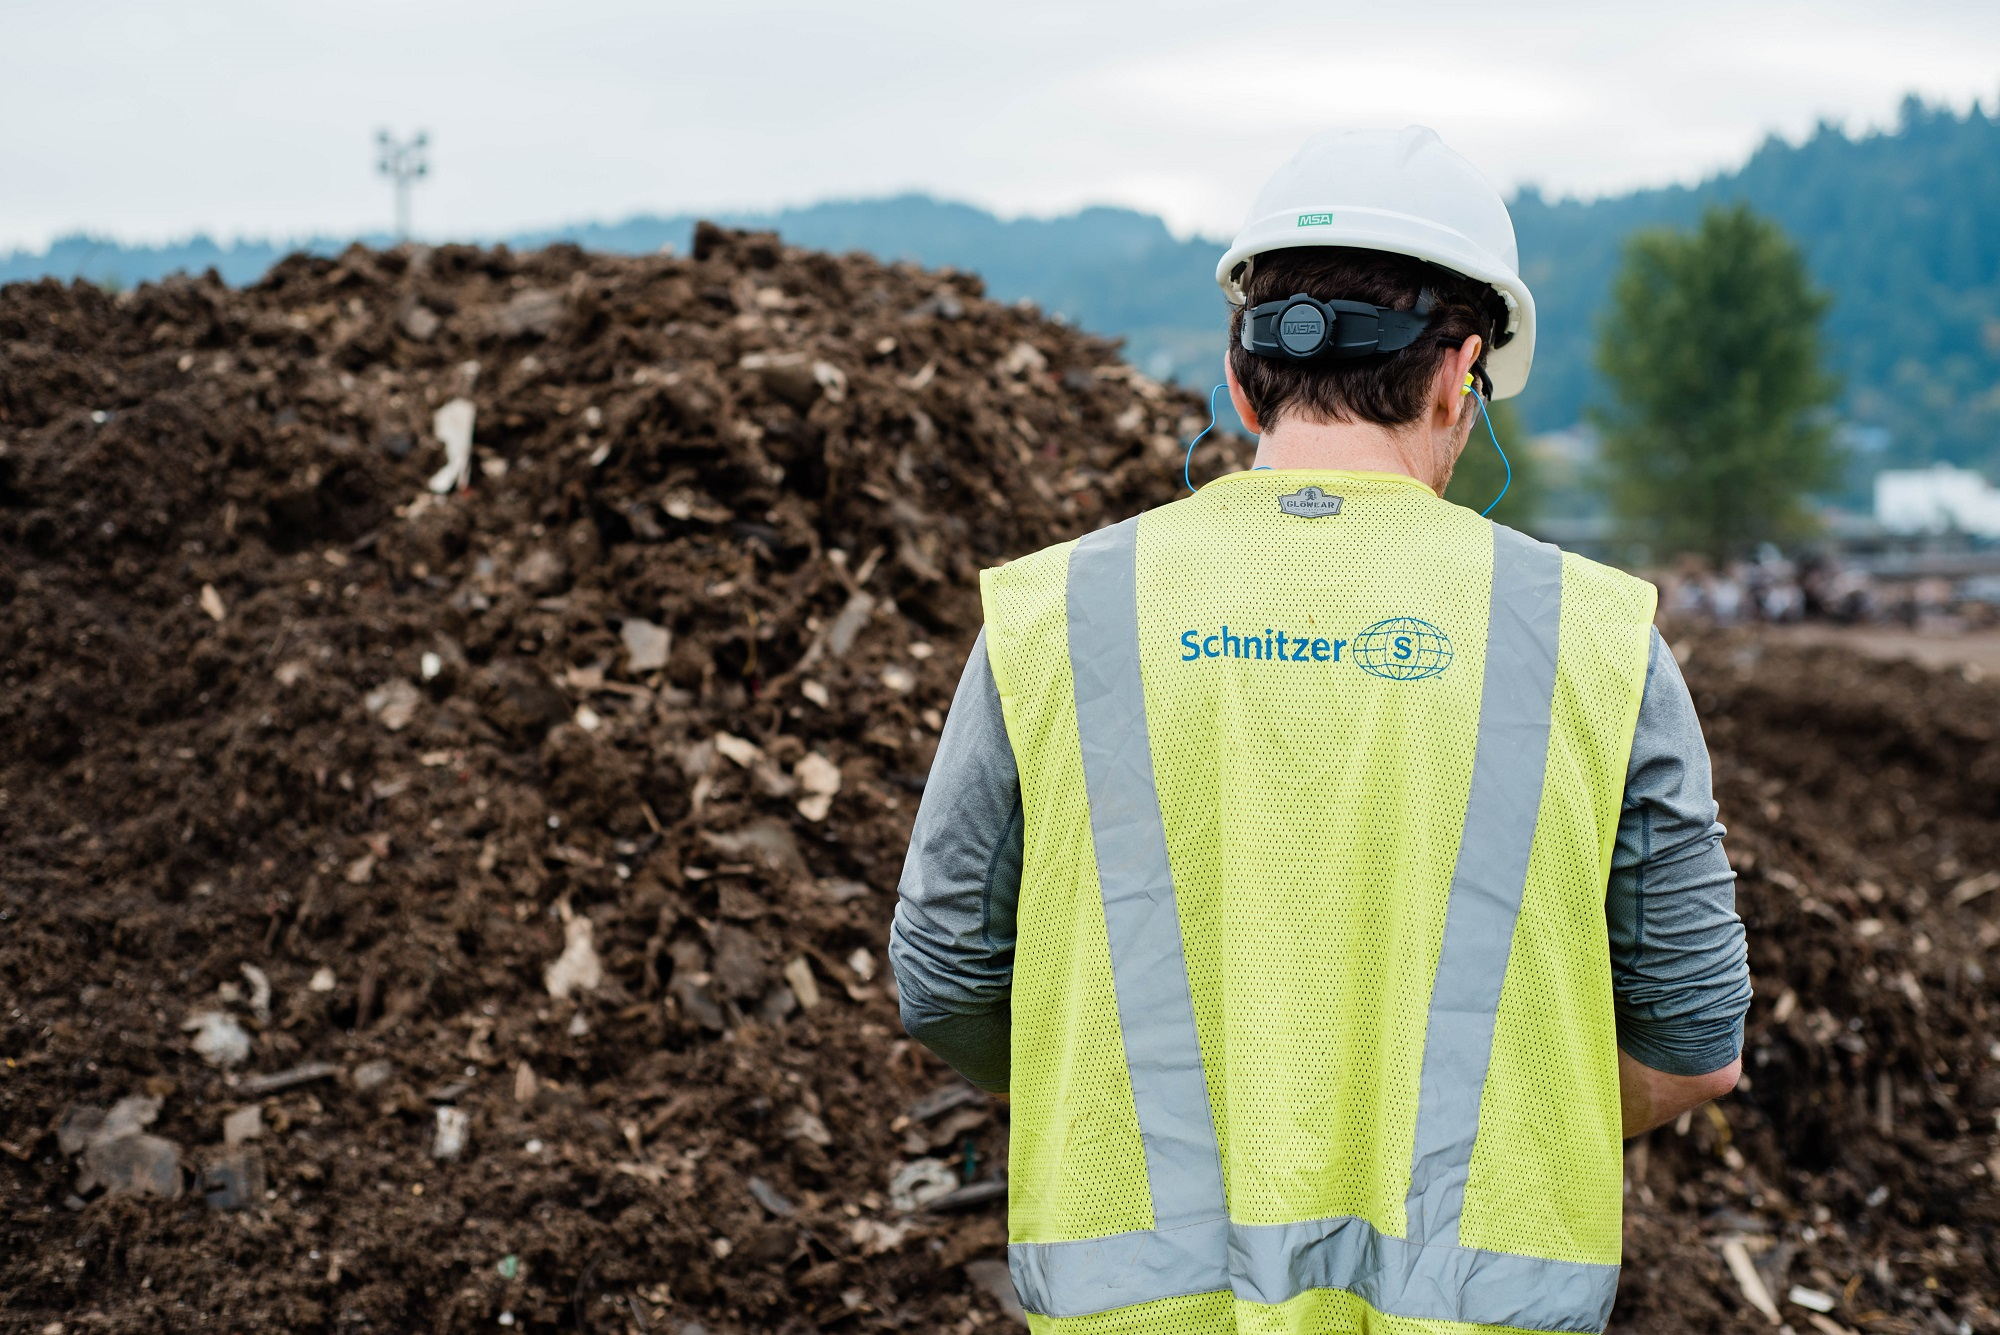 Schnitzer Steel's Rob Ellsworth Explains Why Sustainability is a Core Value